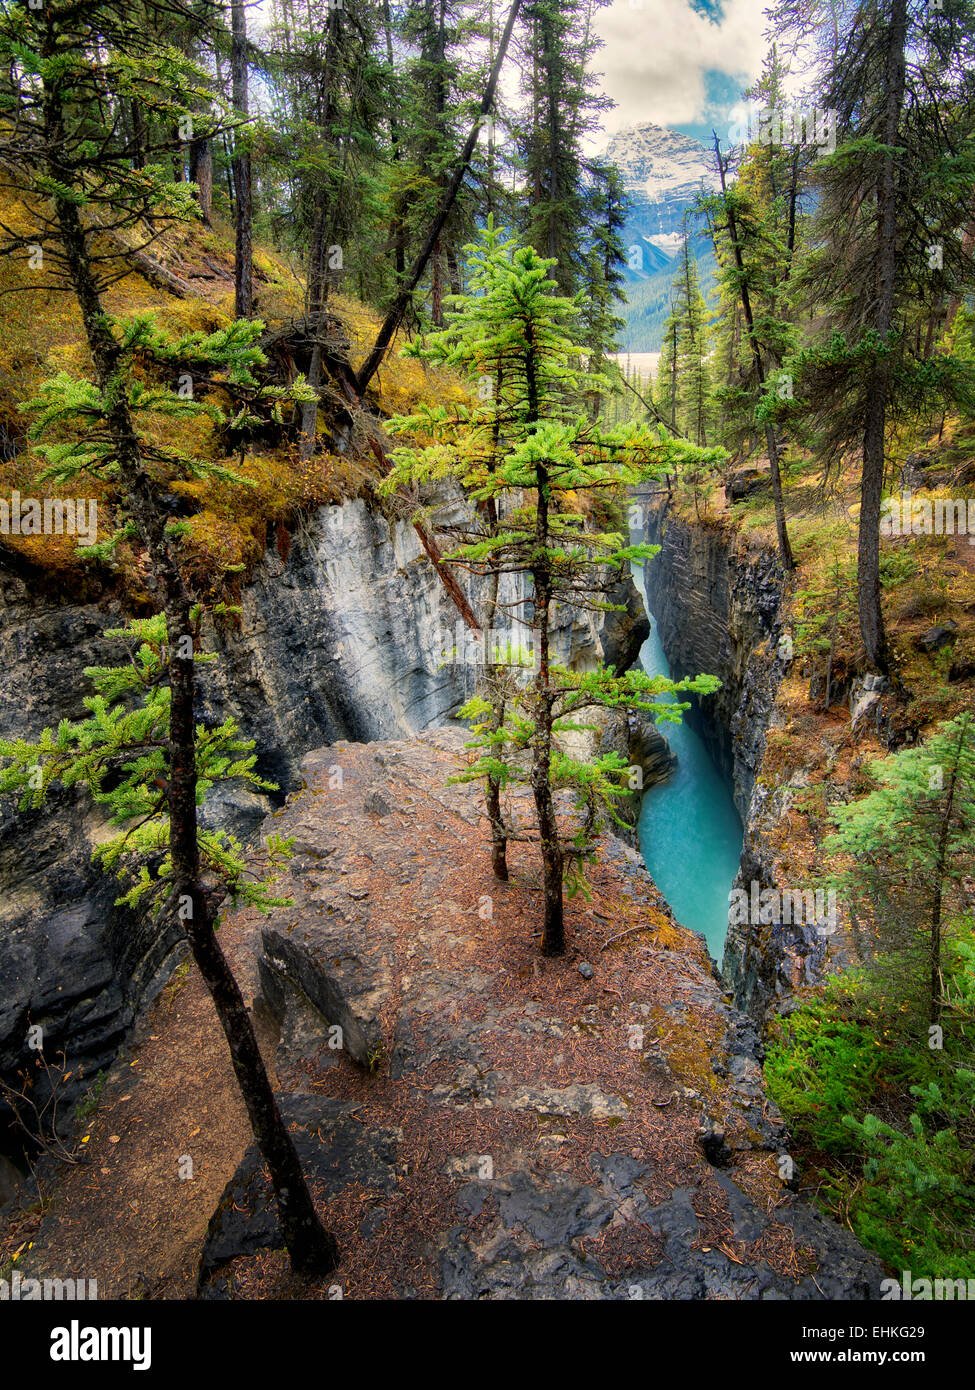 Dans le canyon du ruisseau de beauté. Le Parc National Jasper, Alberta, Canada Photo Stock